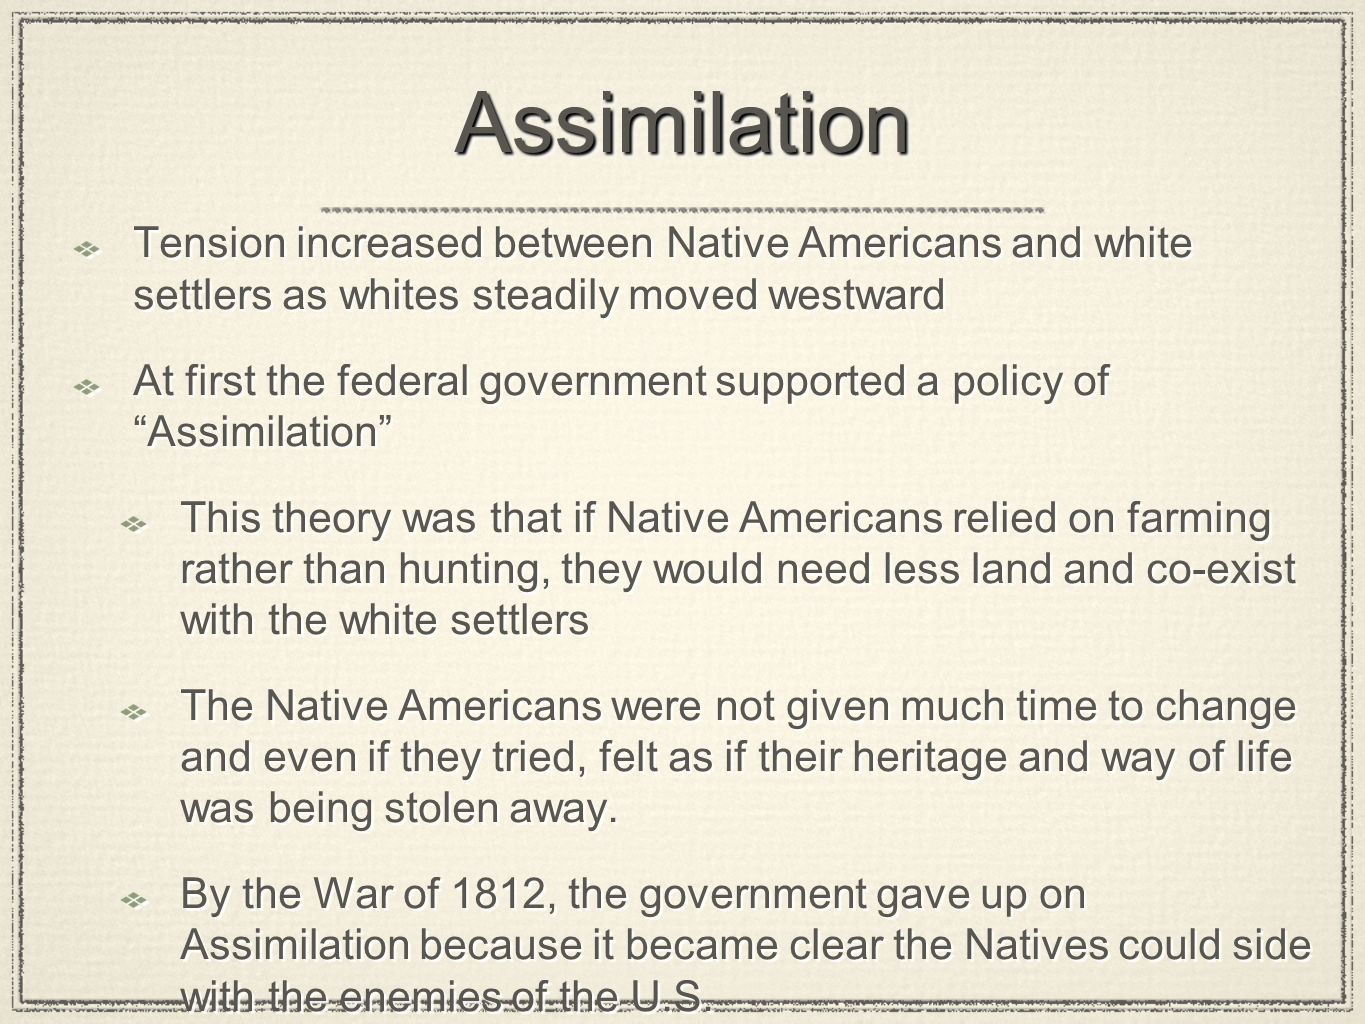 Assimilation Tension increased between Native Americans and white settlers as whites steadily moved westward.